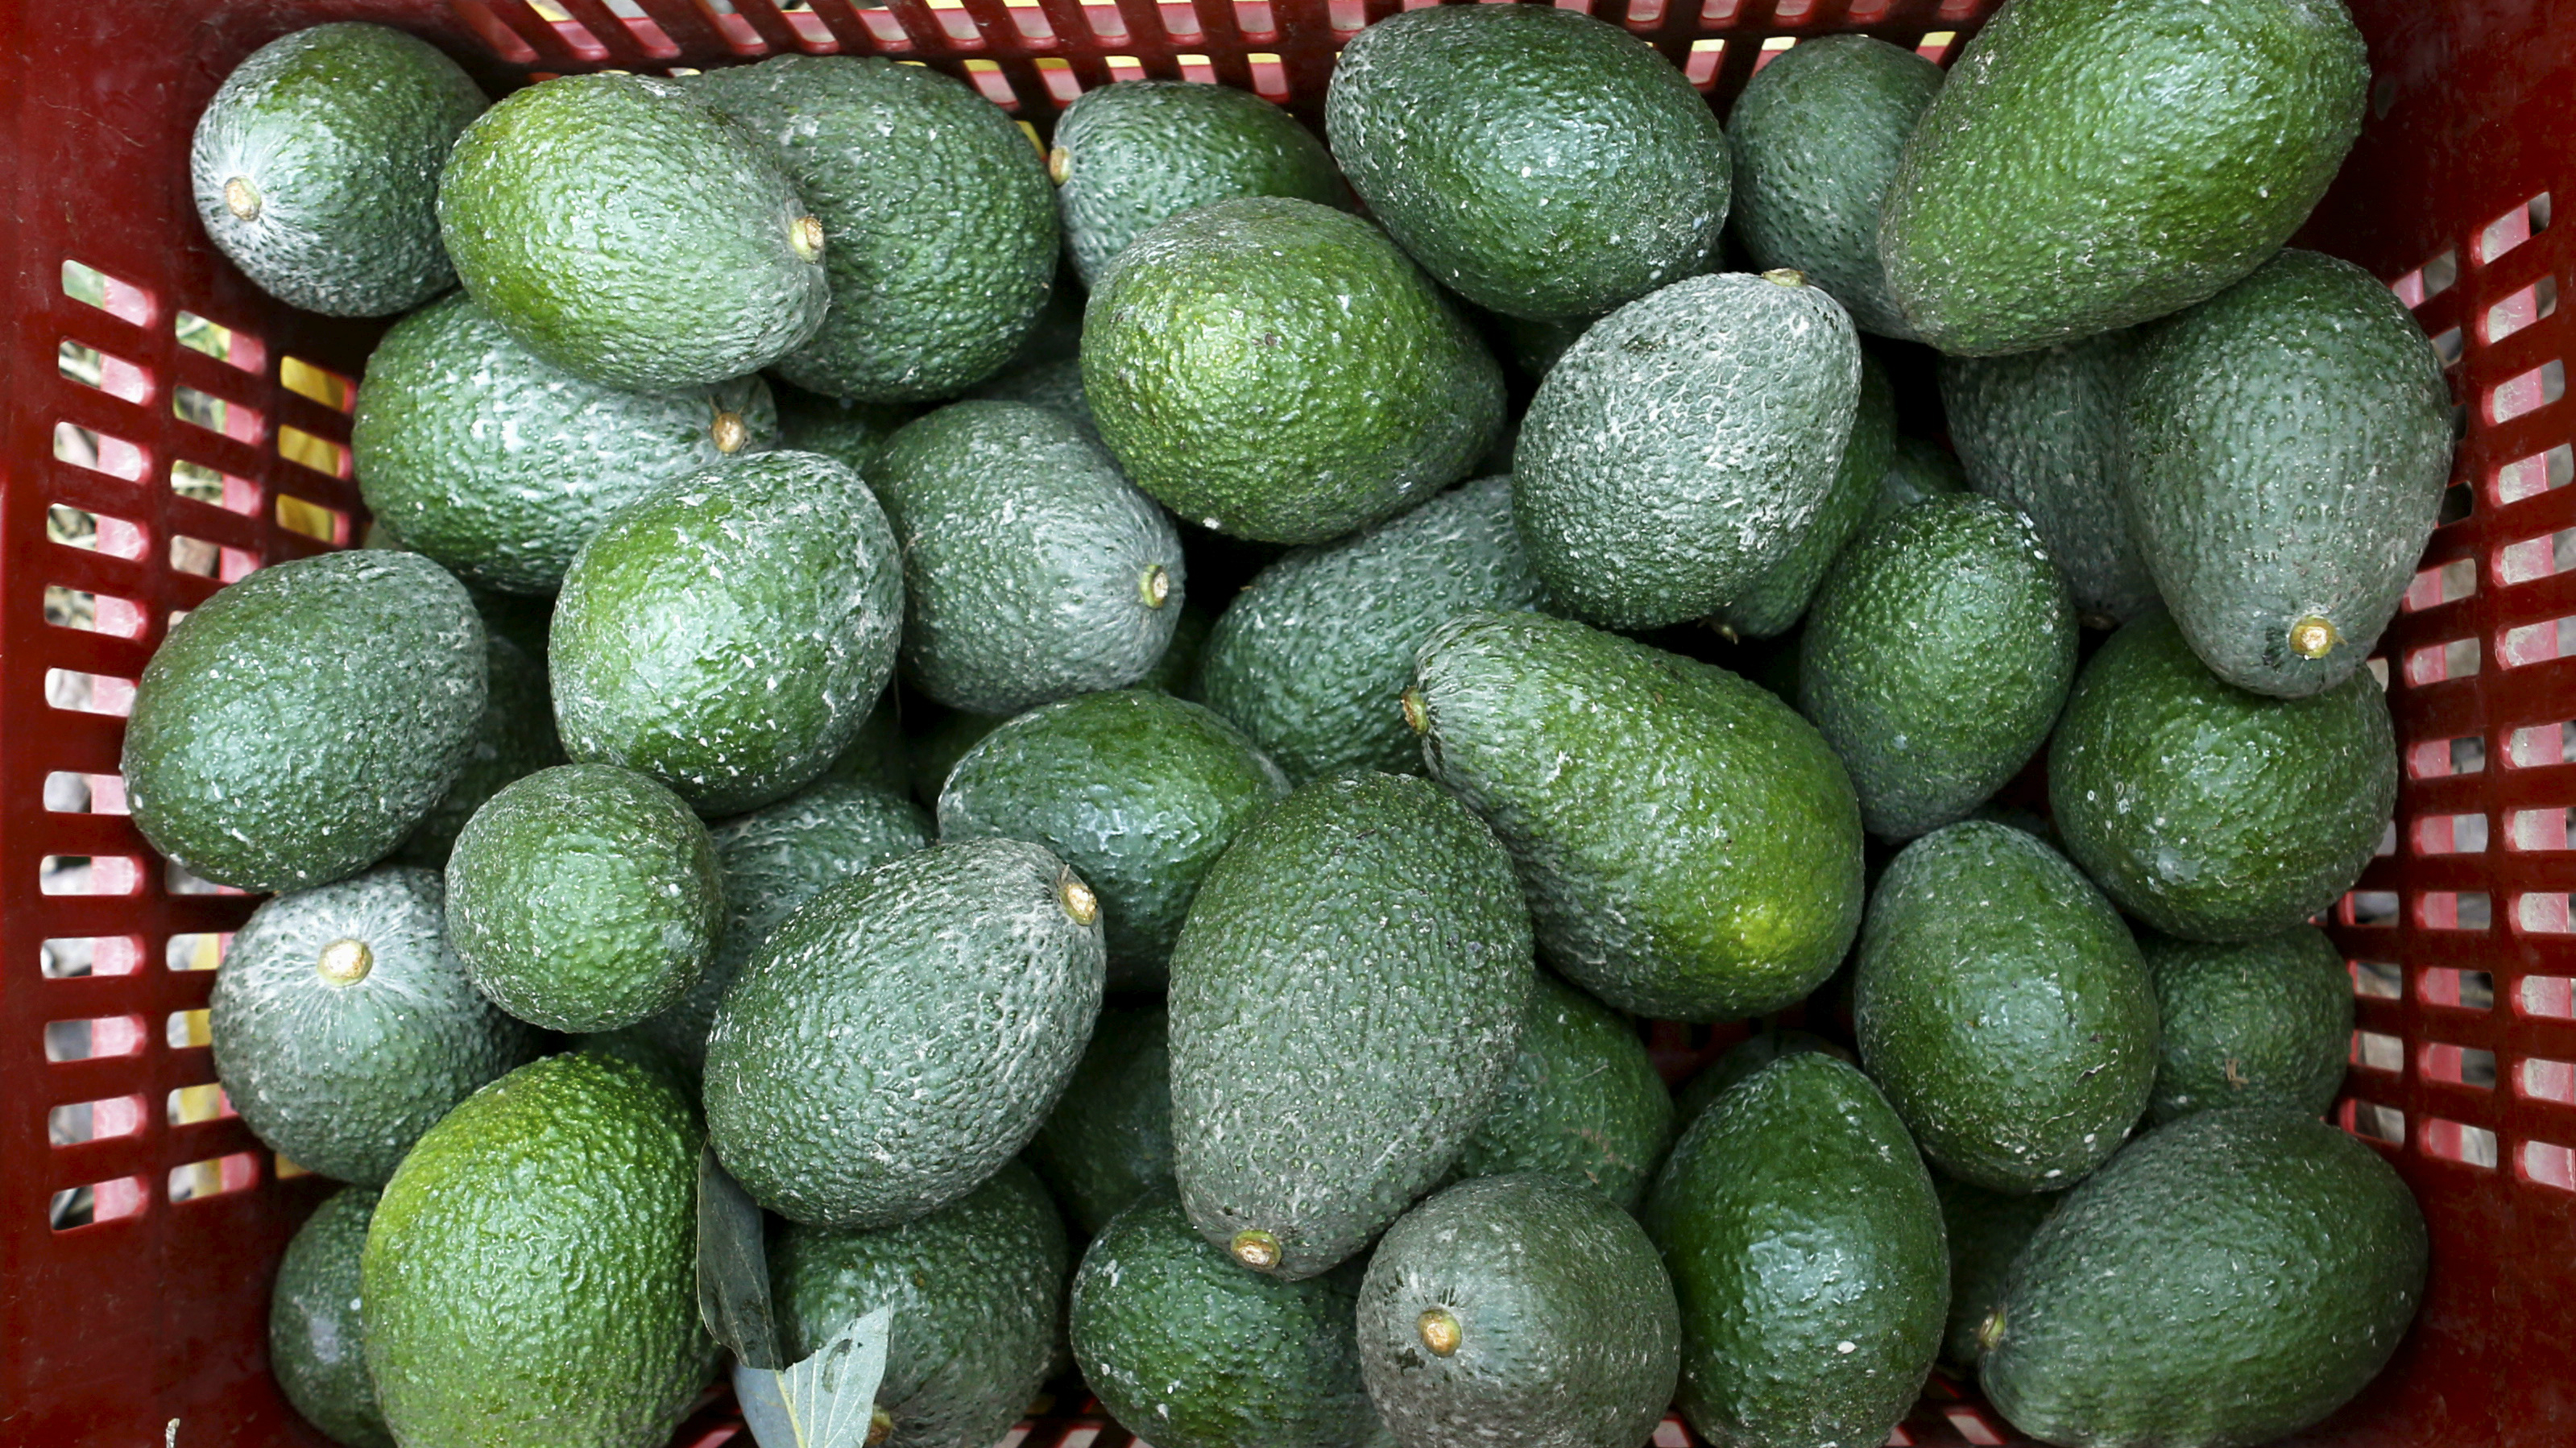 Avocado prices are rising with their popularity.